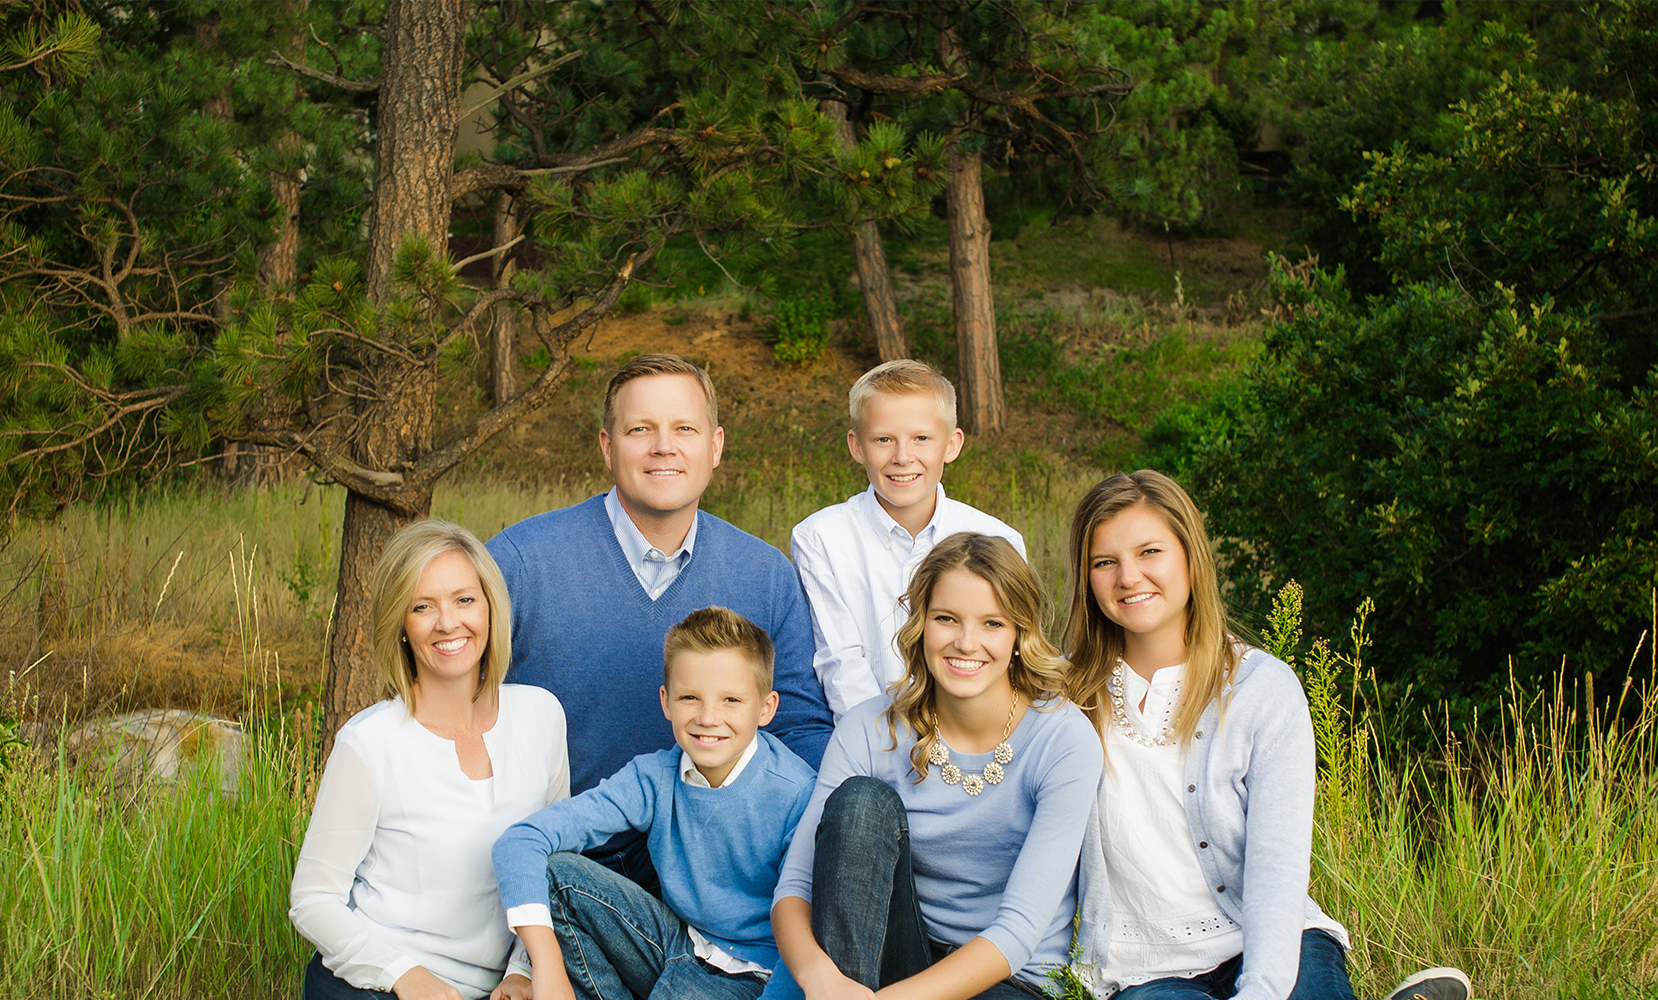 Dr. Polson and his family